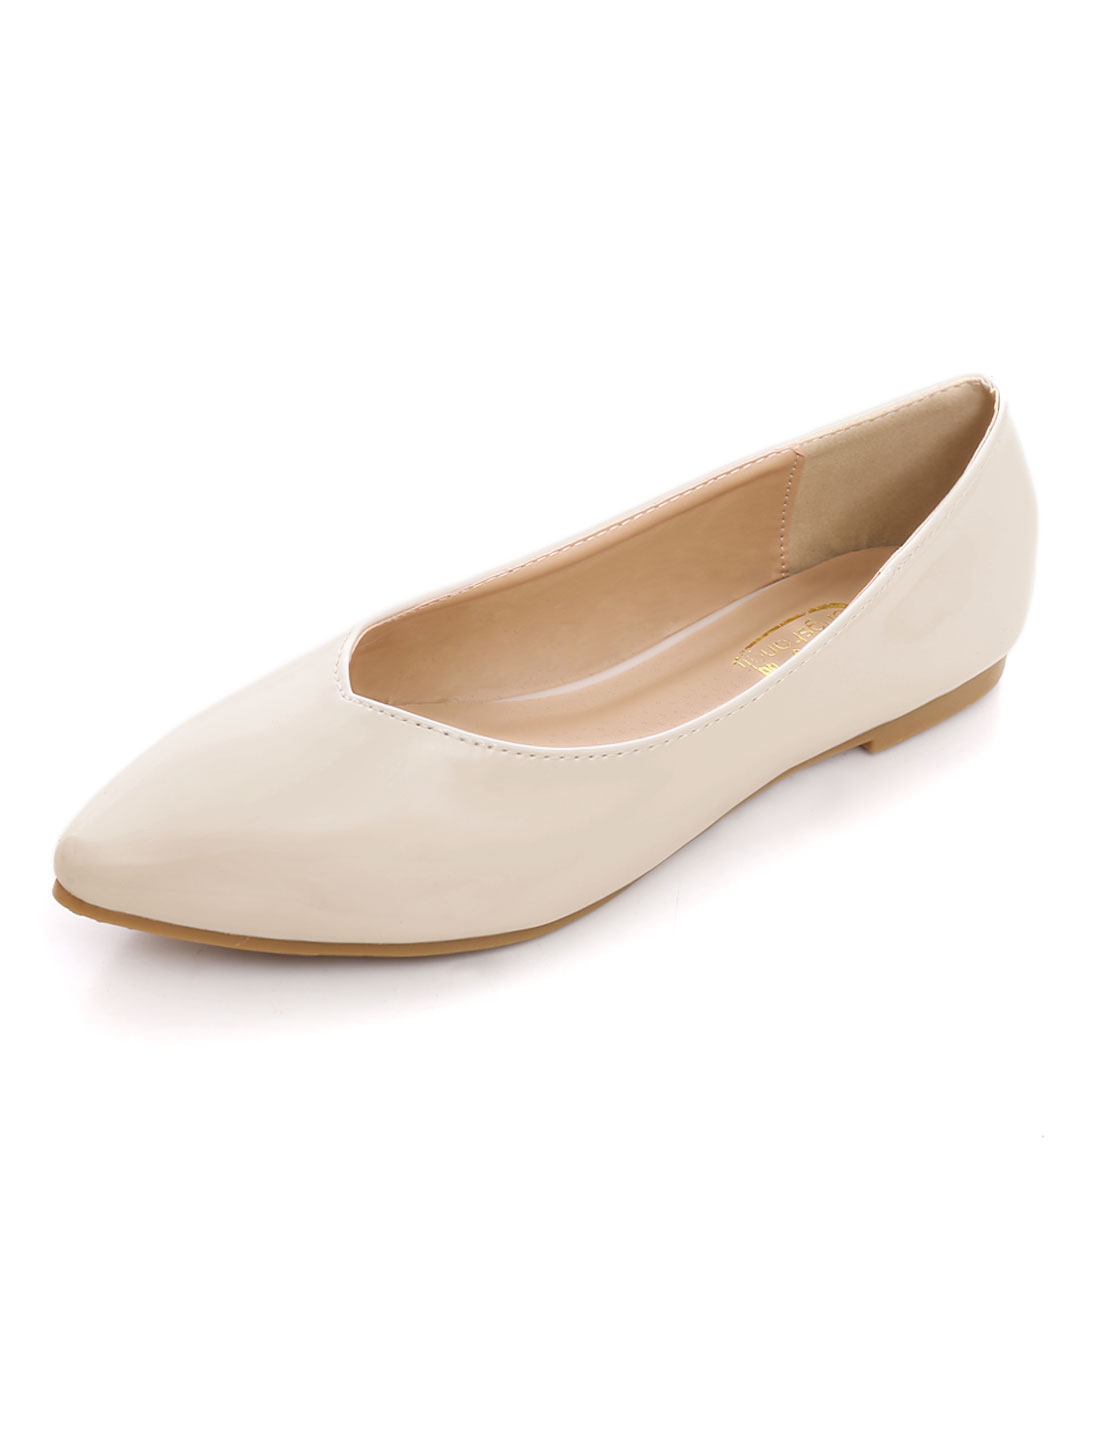 Women Textured Outside V-Cut Vamp Pointed Toe Flat Shoes Apricot US 9-9.5